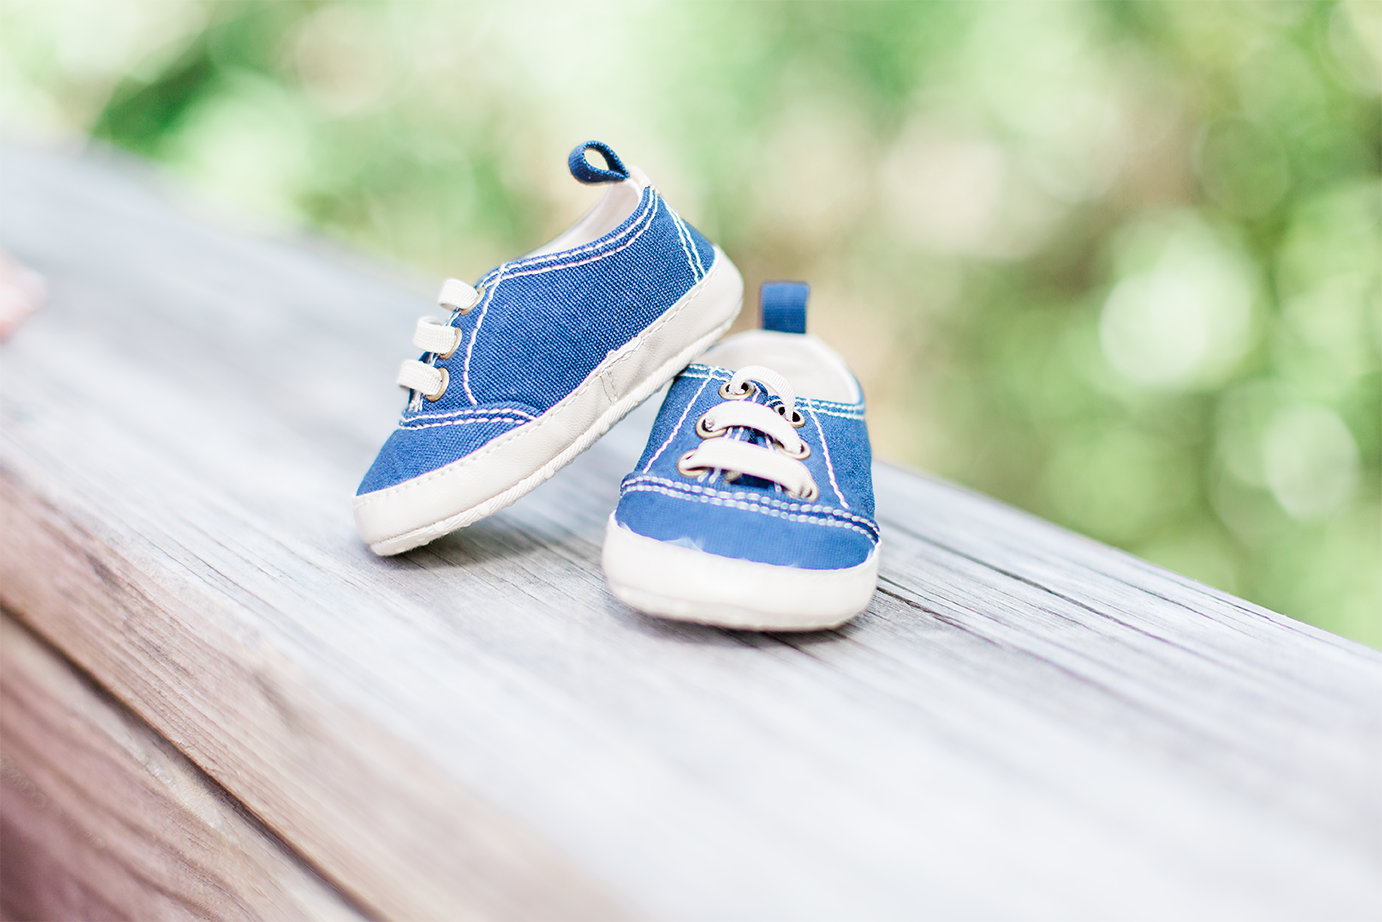 Baby shoes | maternity session